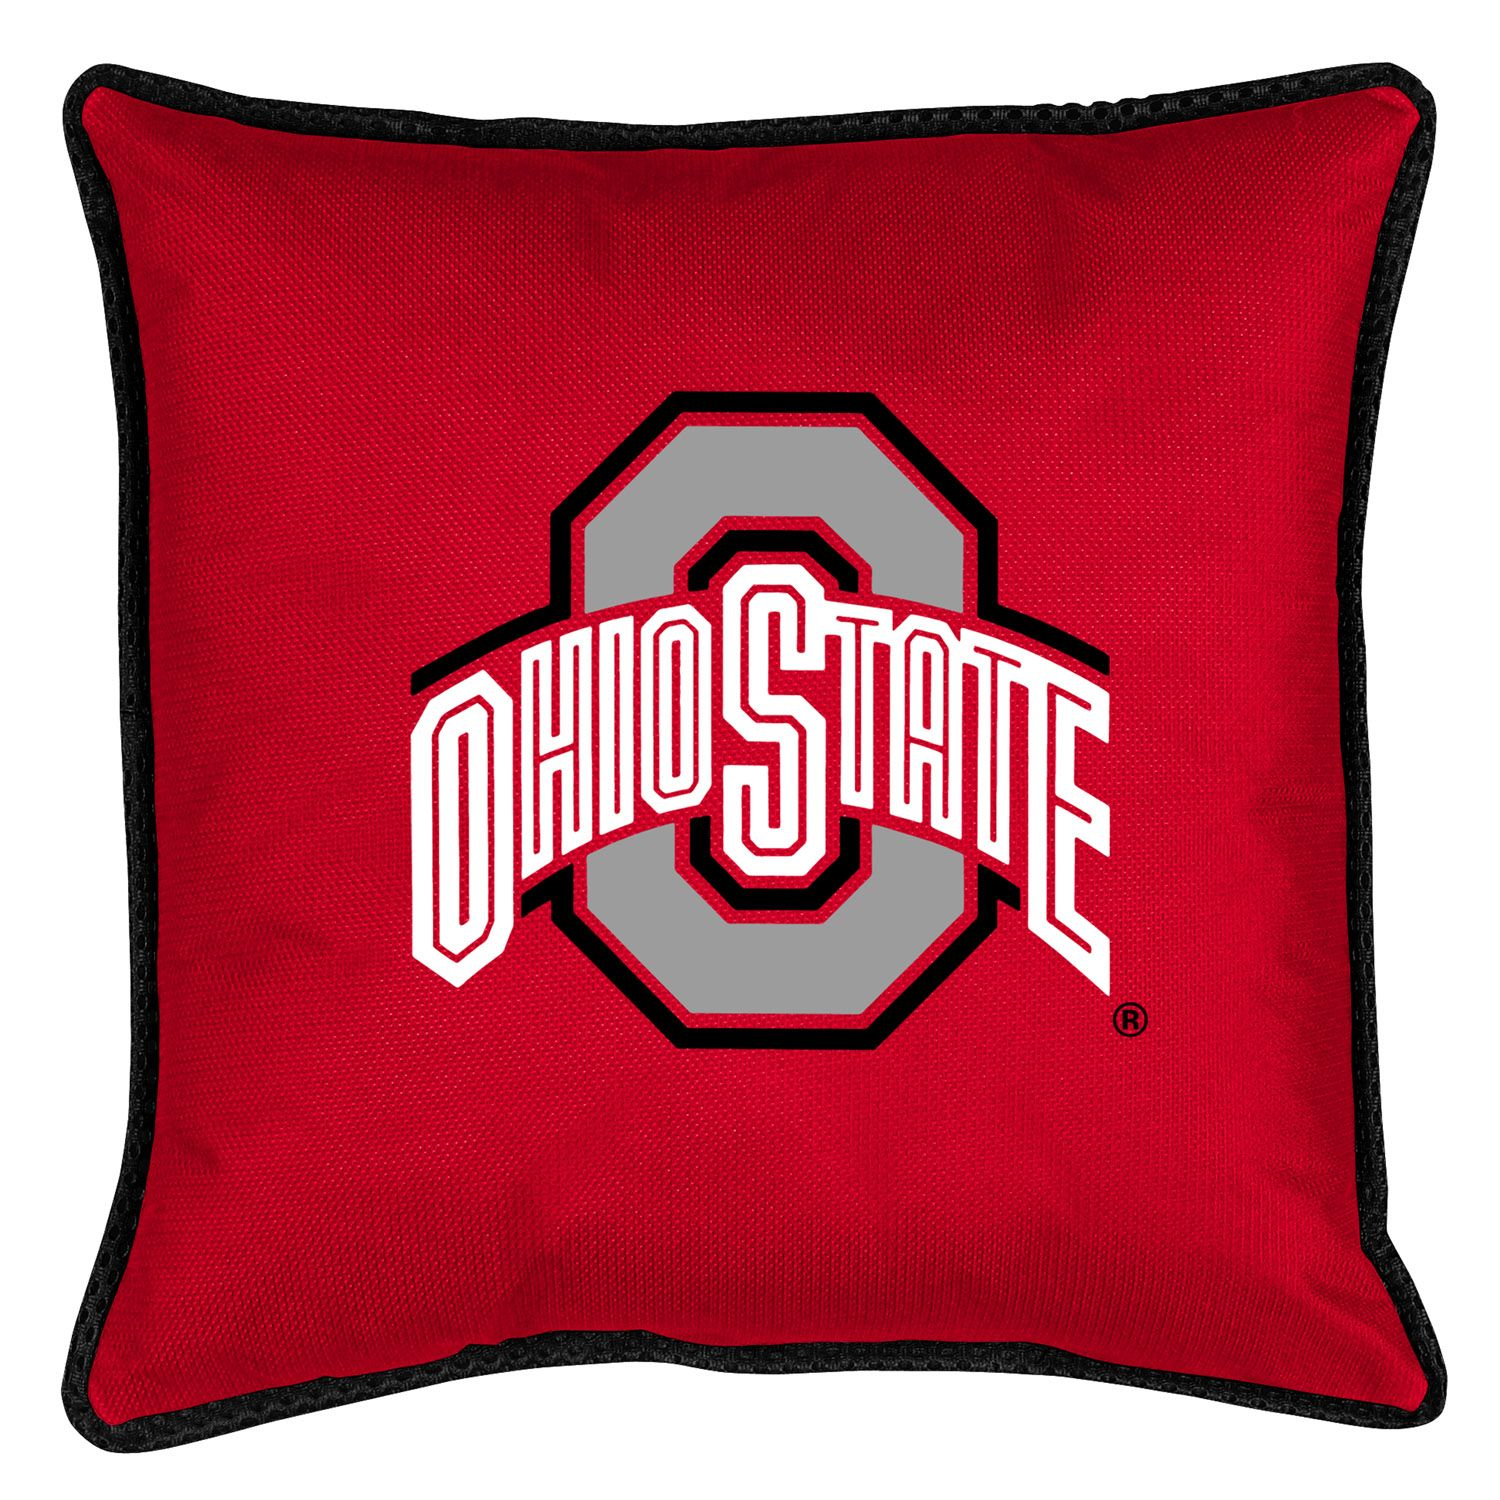 State Buckeyes Decorative Pillow